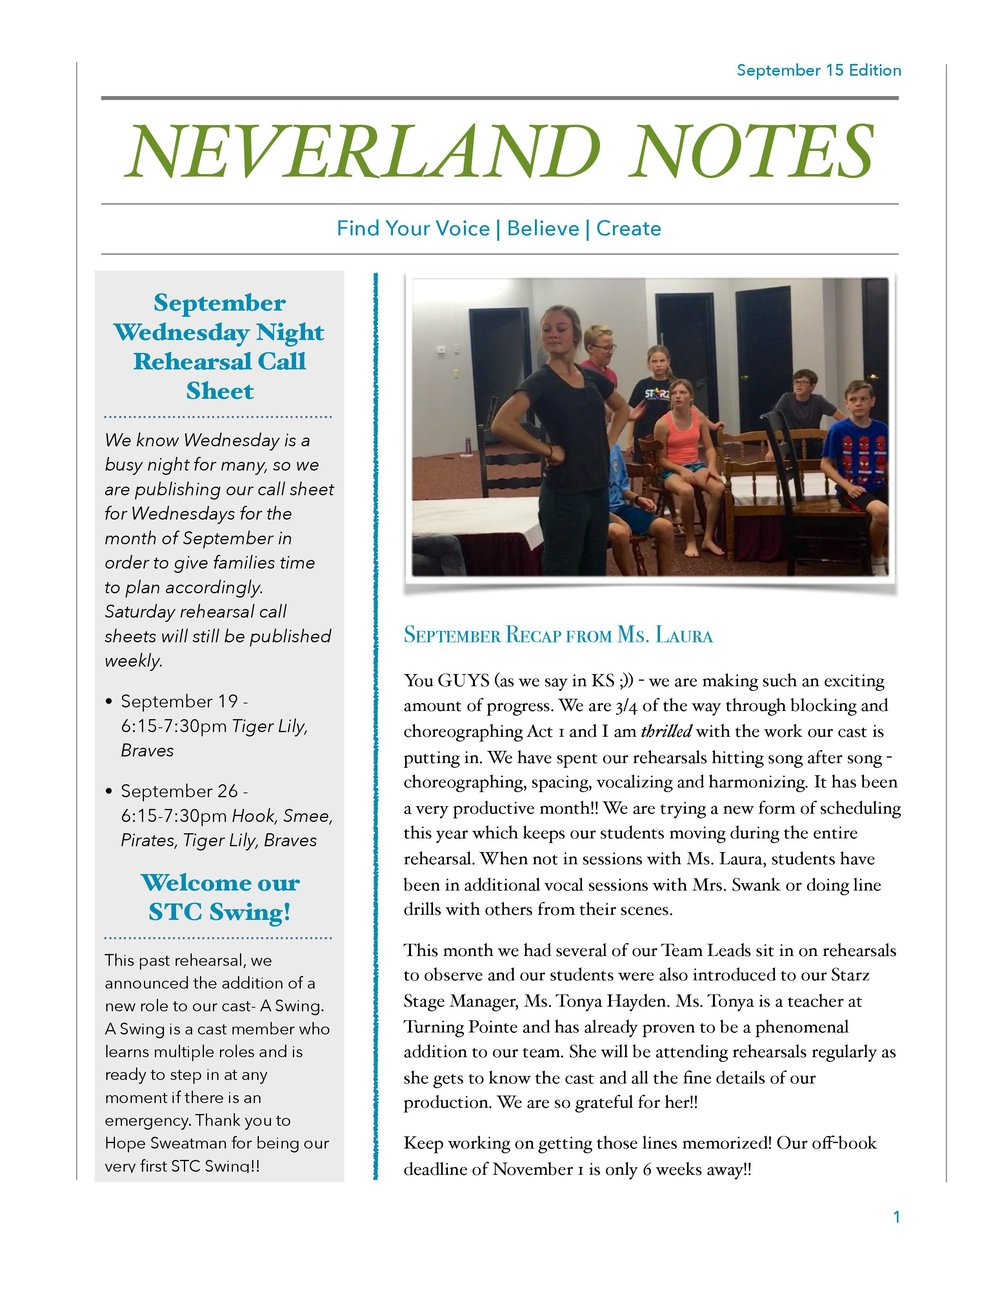 STC Newsletter copy 9_15-page-001.jpg